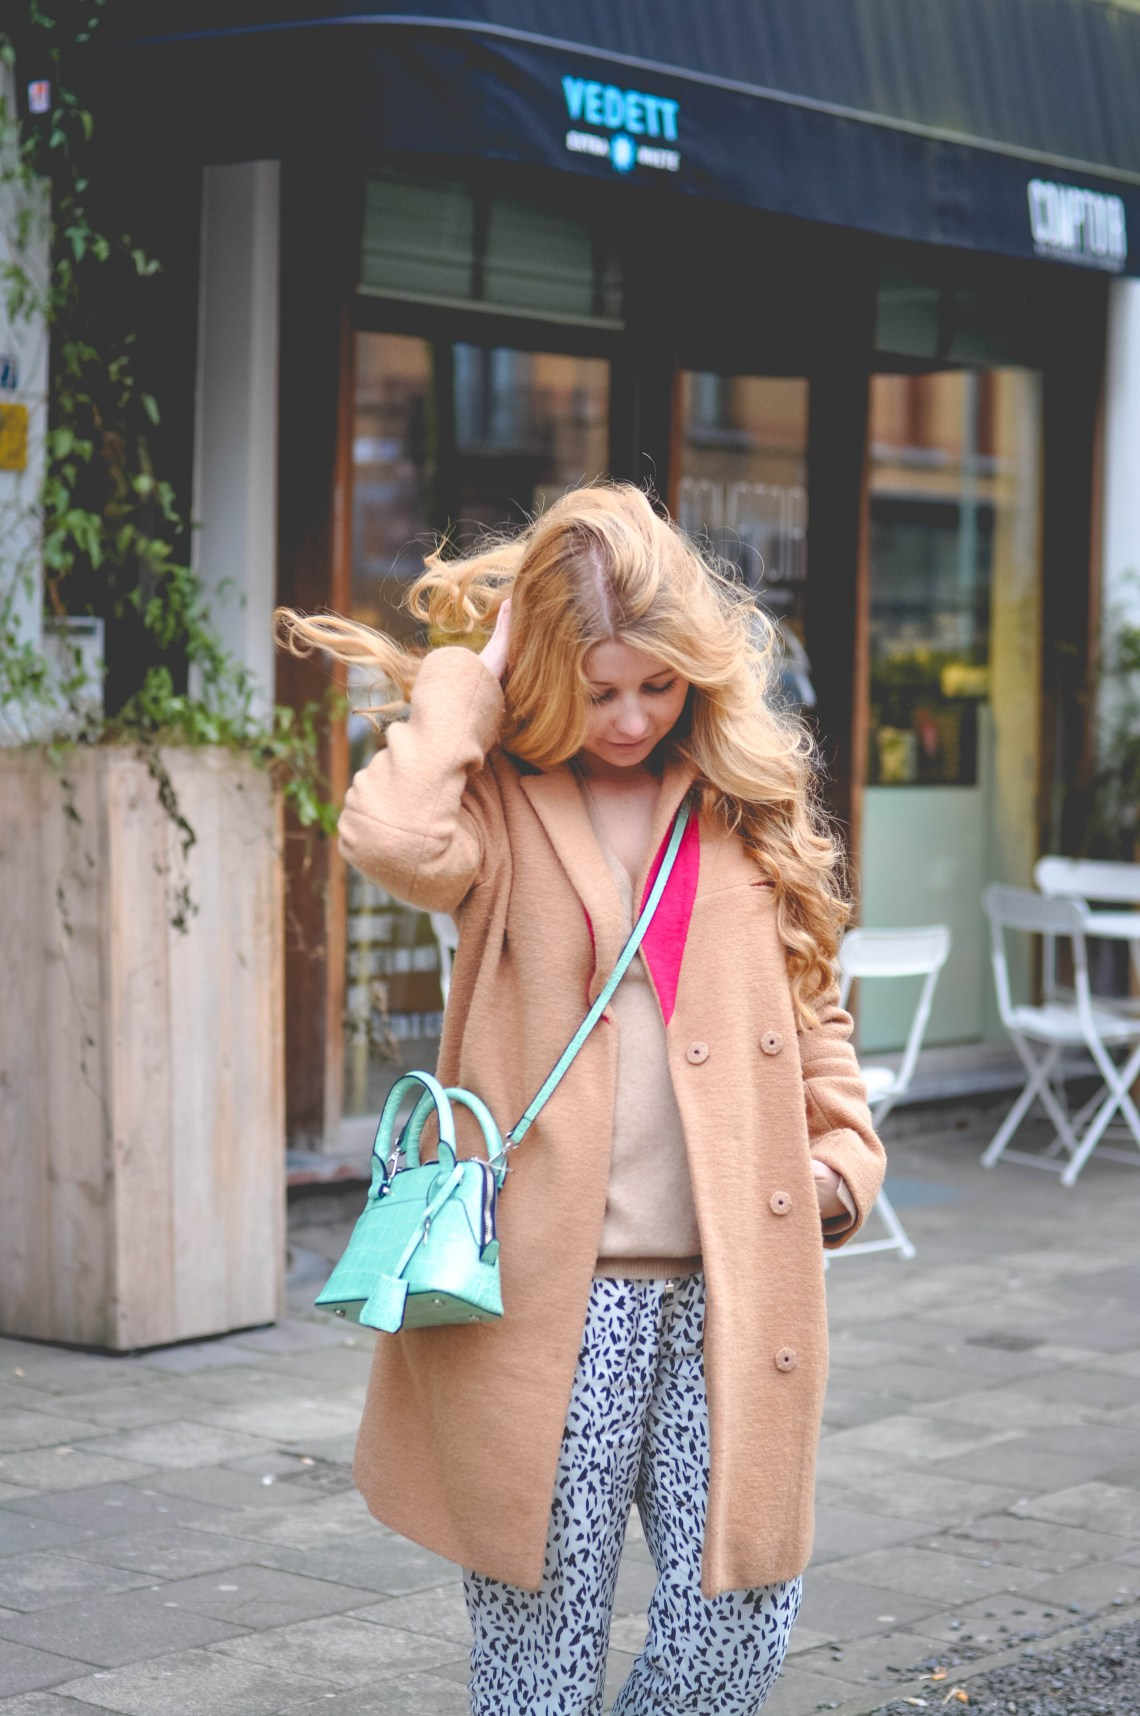 Dogs and Dresses camel coat print pants and cashmere sweater outfit-21